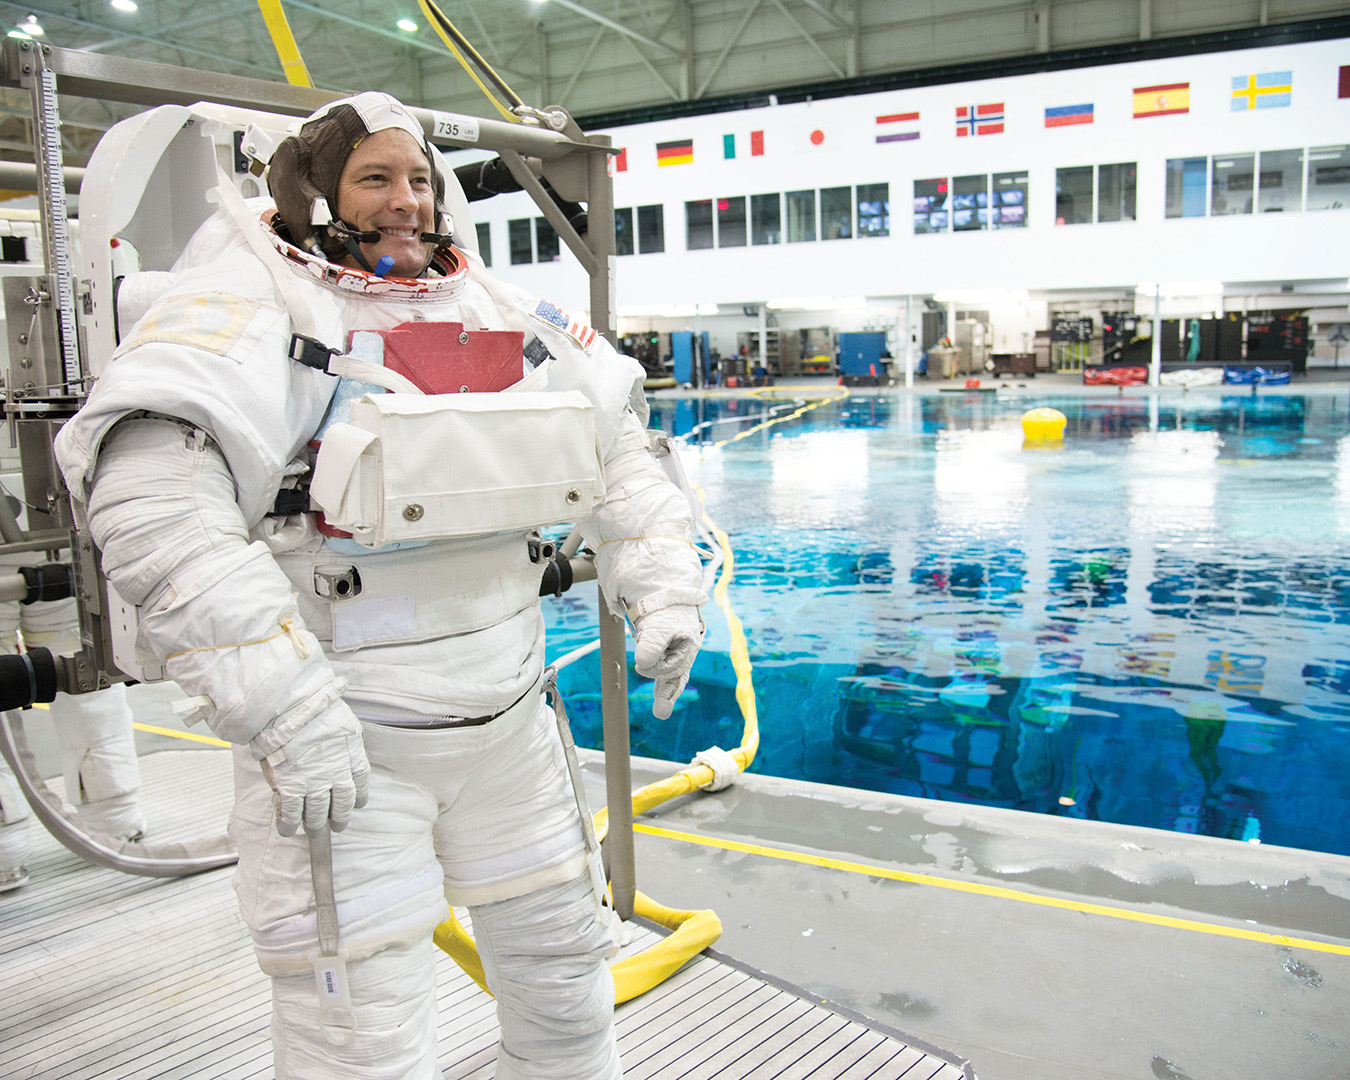 The Making of an Astronaut - How Randolph native Scott Tingle shot into space aboard the International Space Station